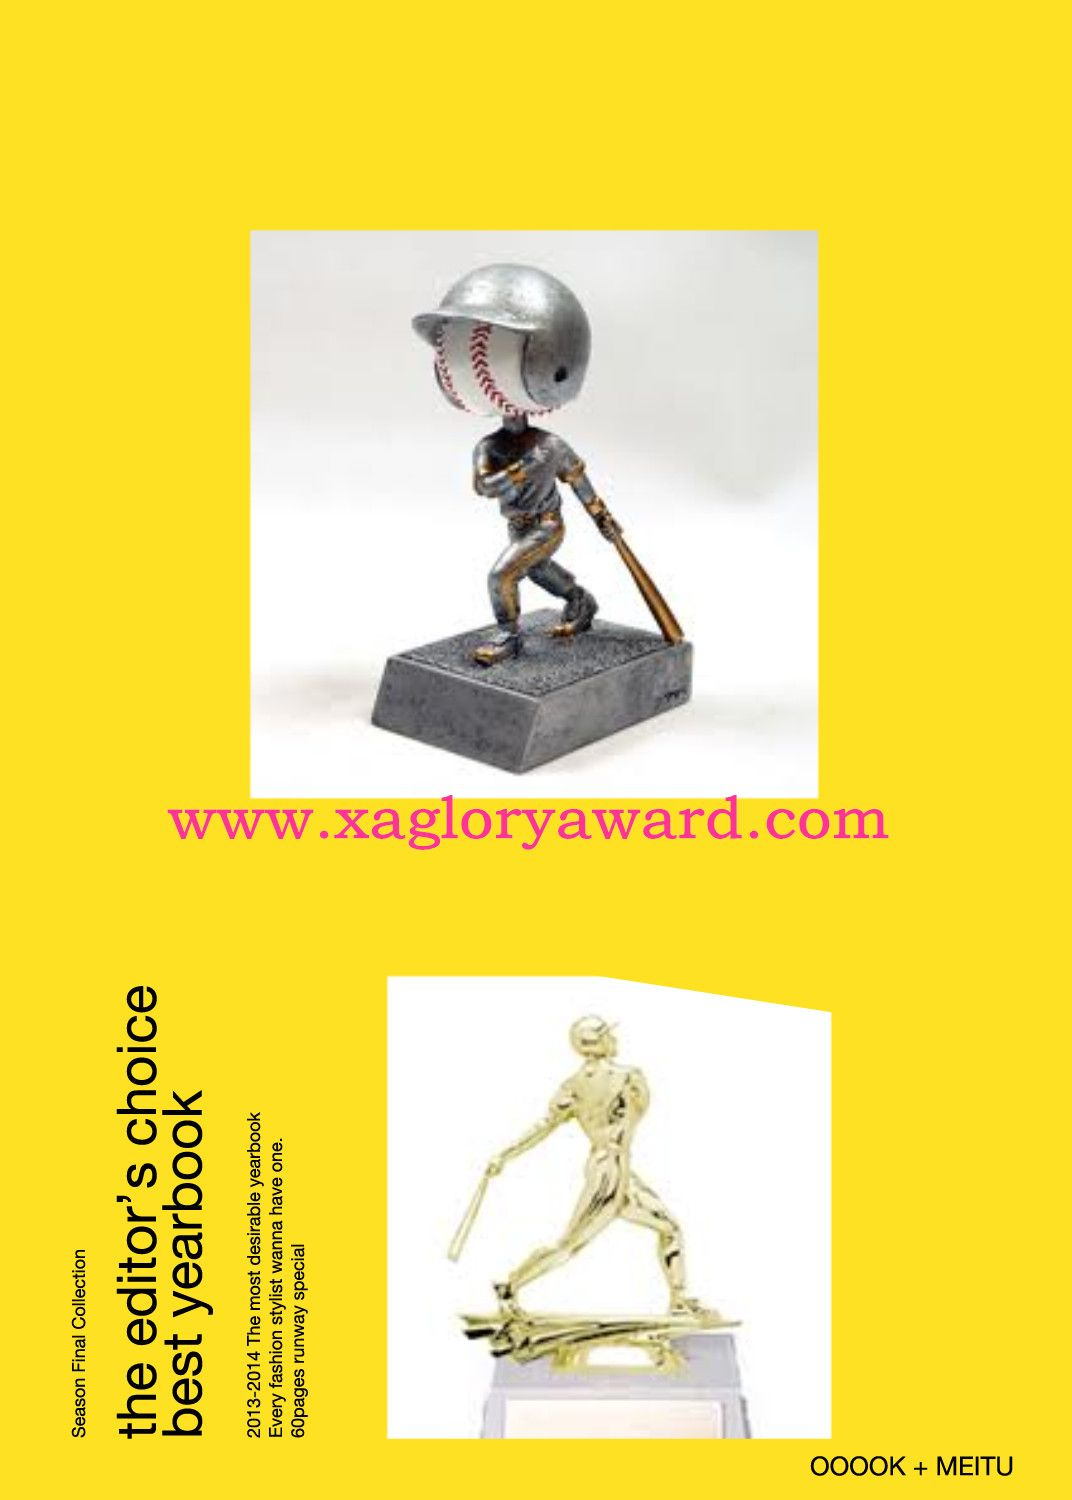 From here:www.xagloryaward.com. In fact, more and more football competitions begin to adopt Crystal Academy Award as an award.